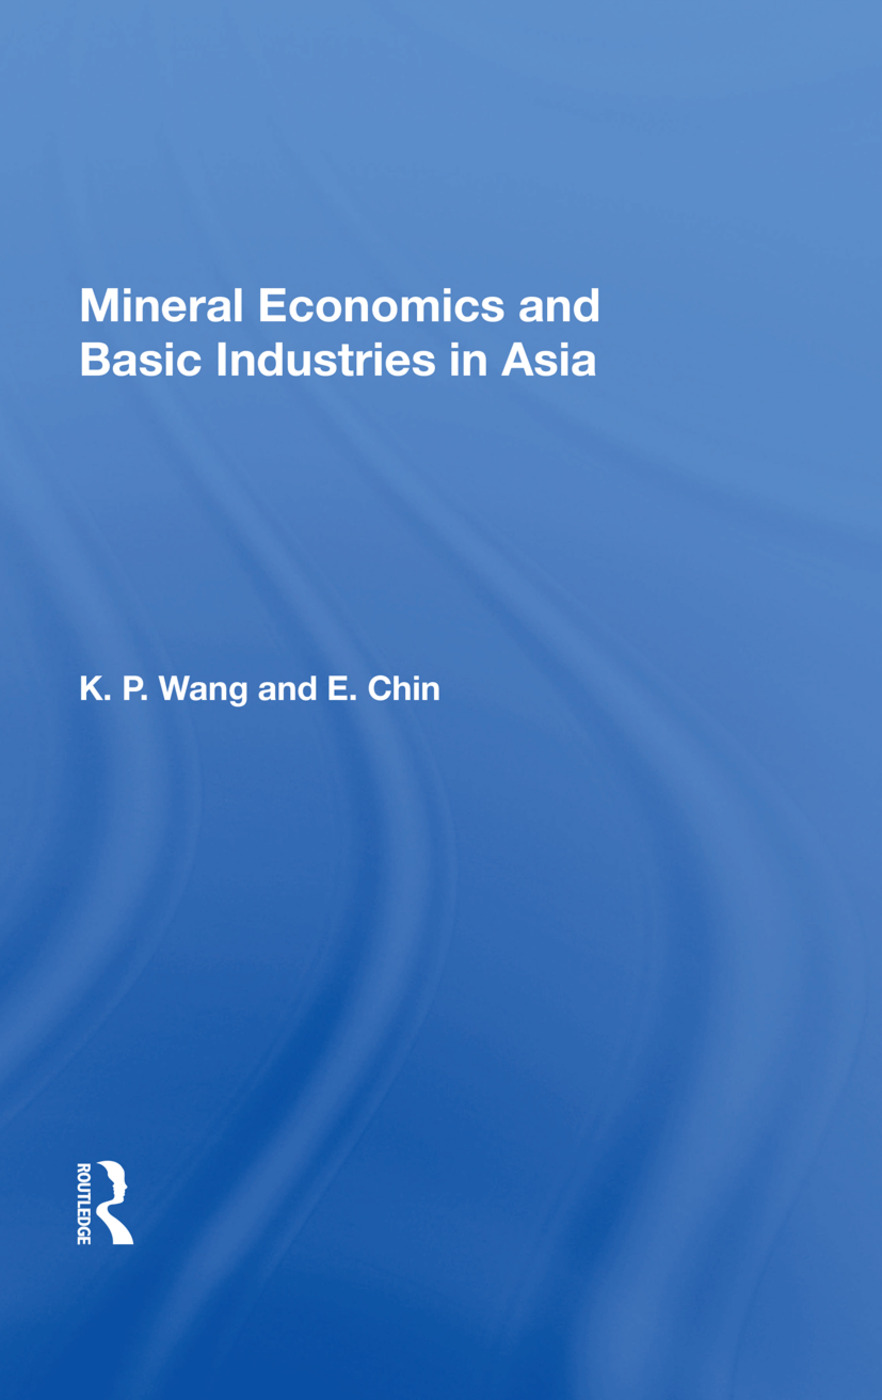 Mineral Economics and Basic Industries in Asia